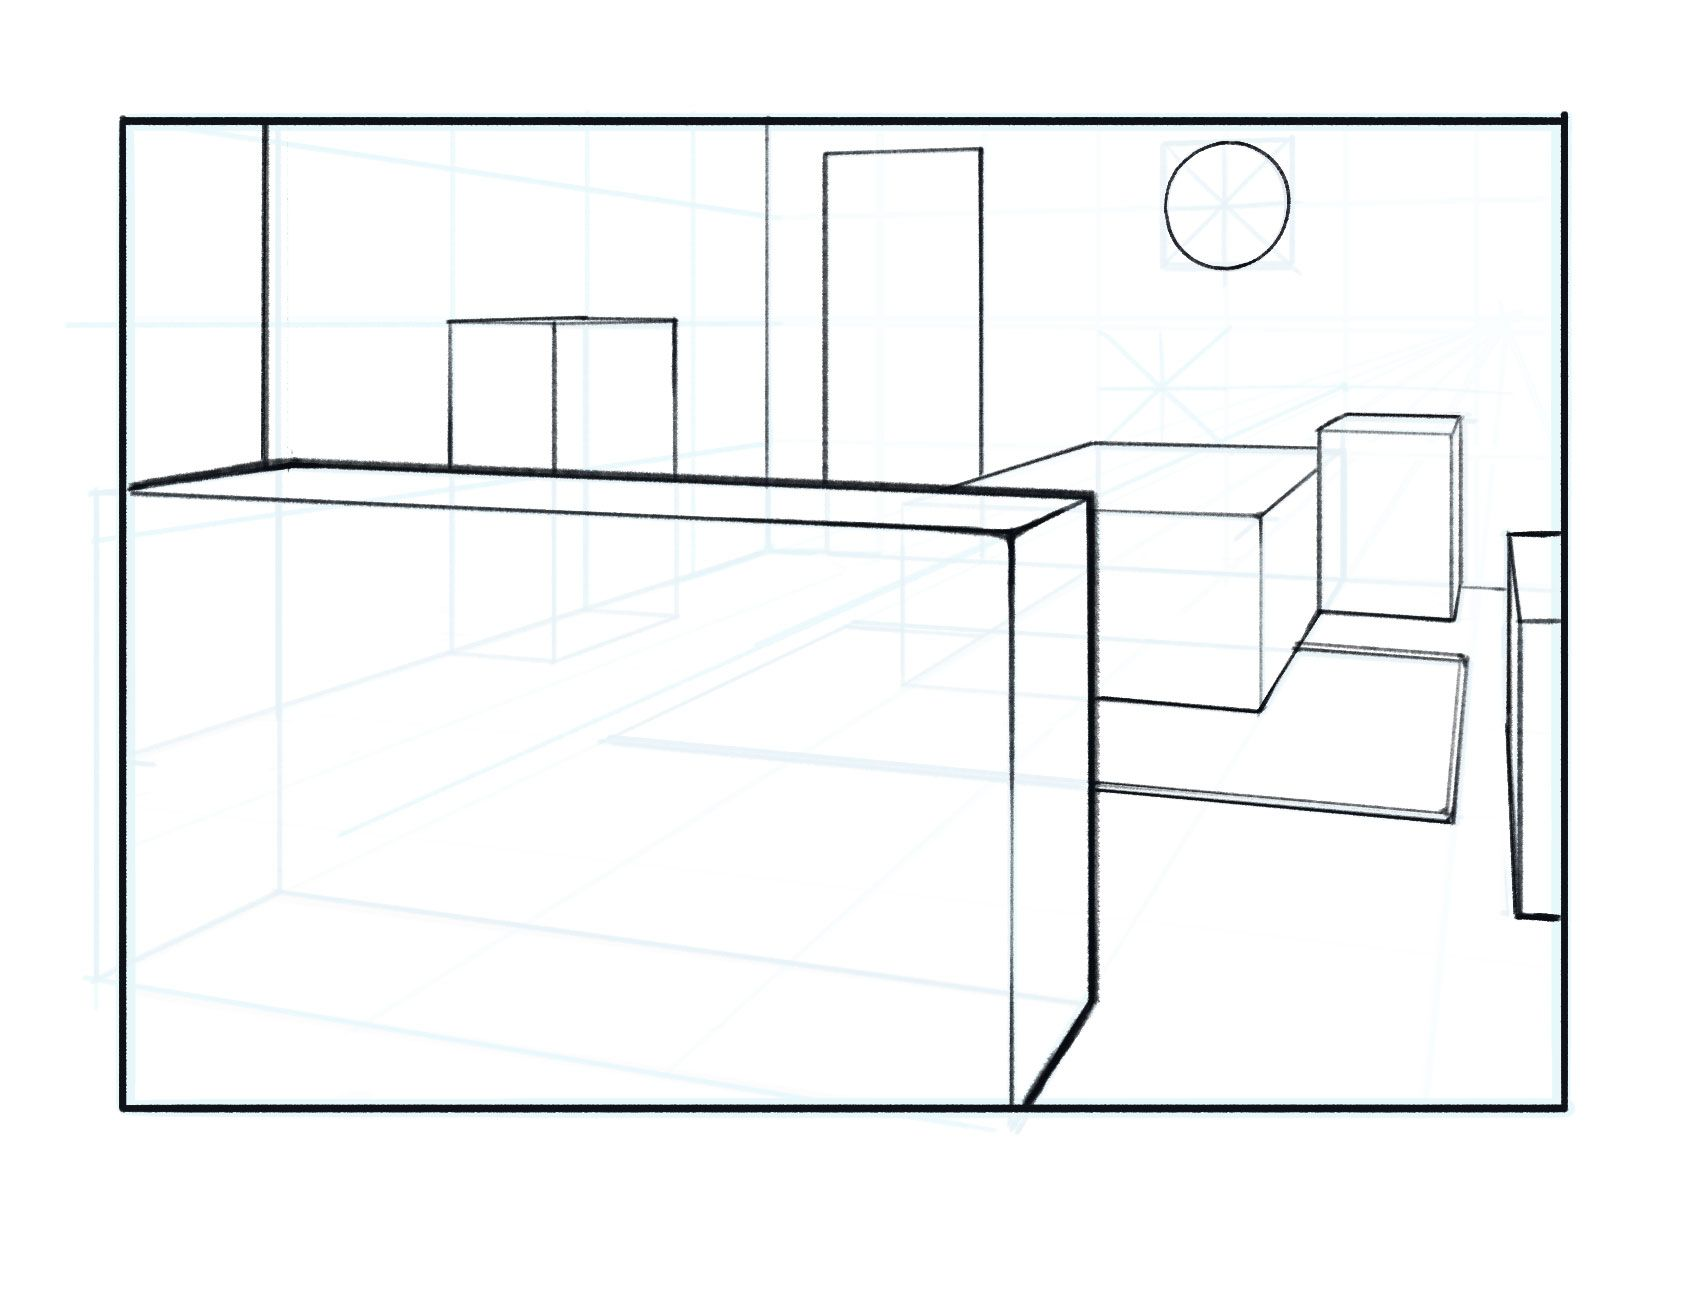 FinalBedroom--Attempt1-boxes.jpg